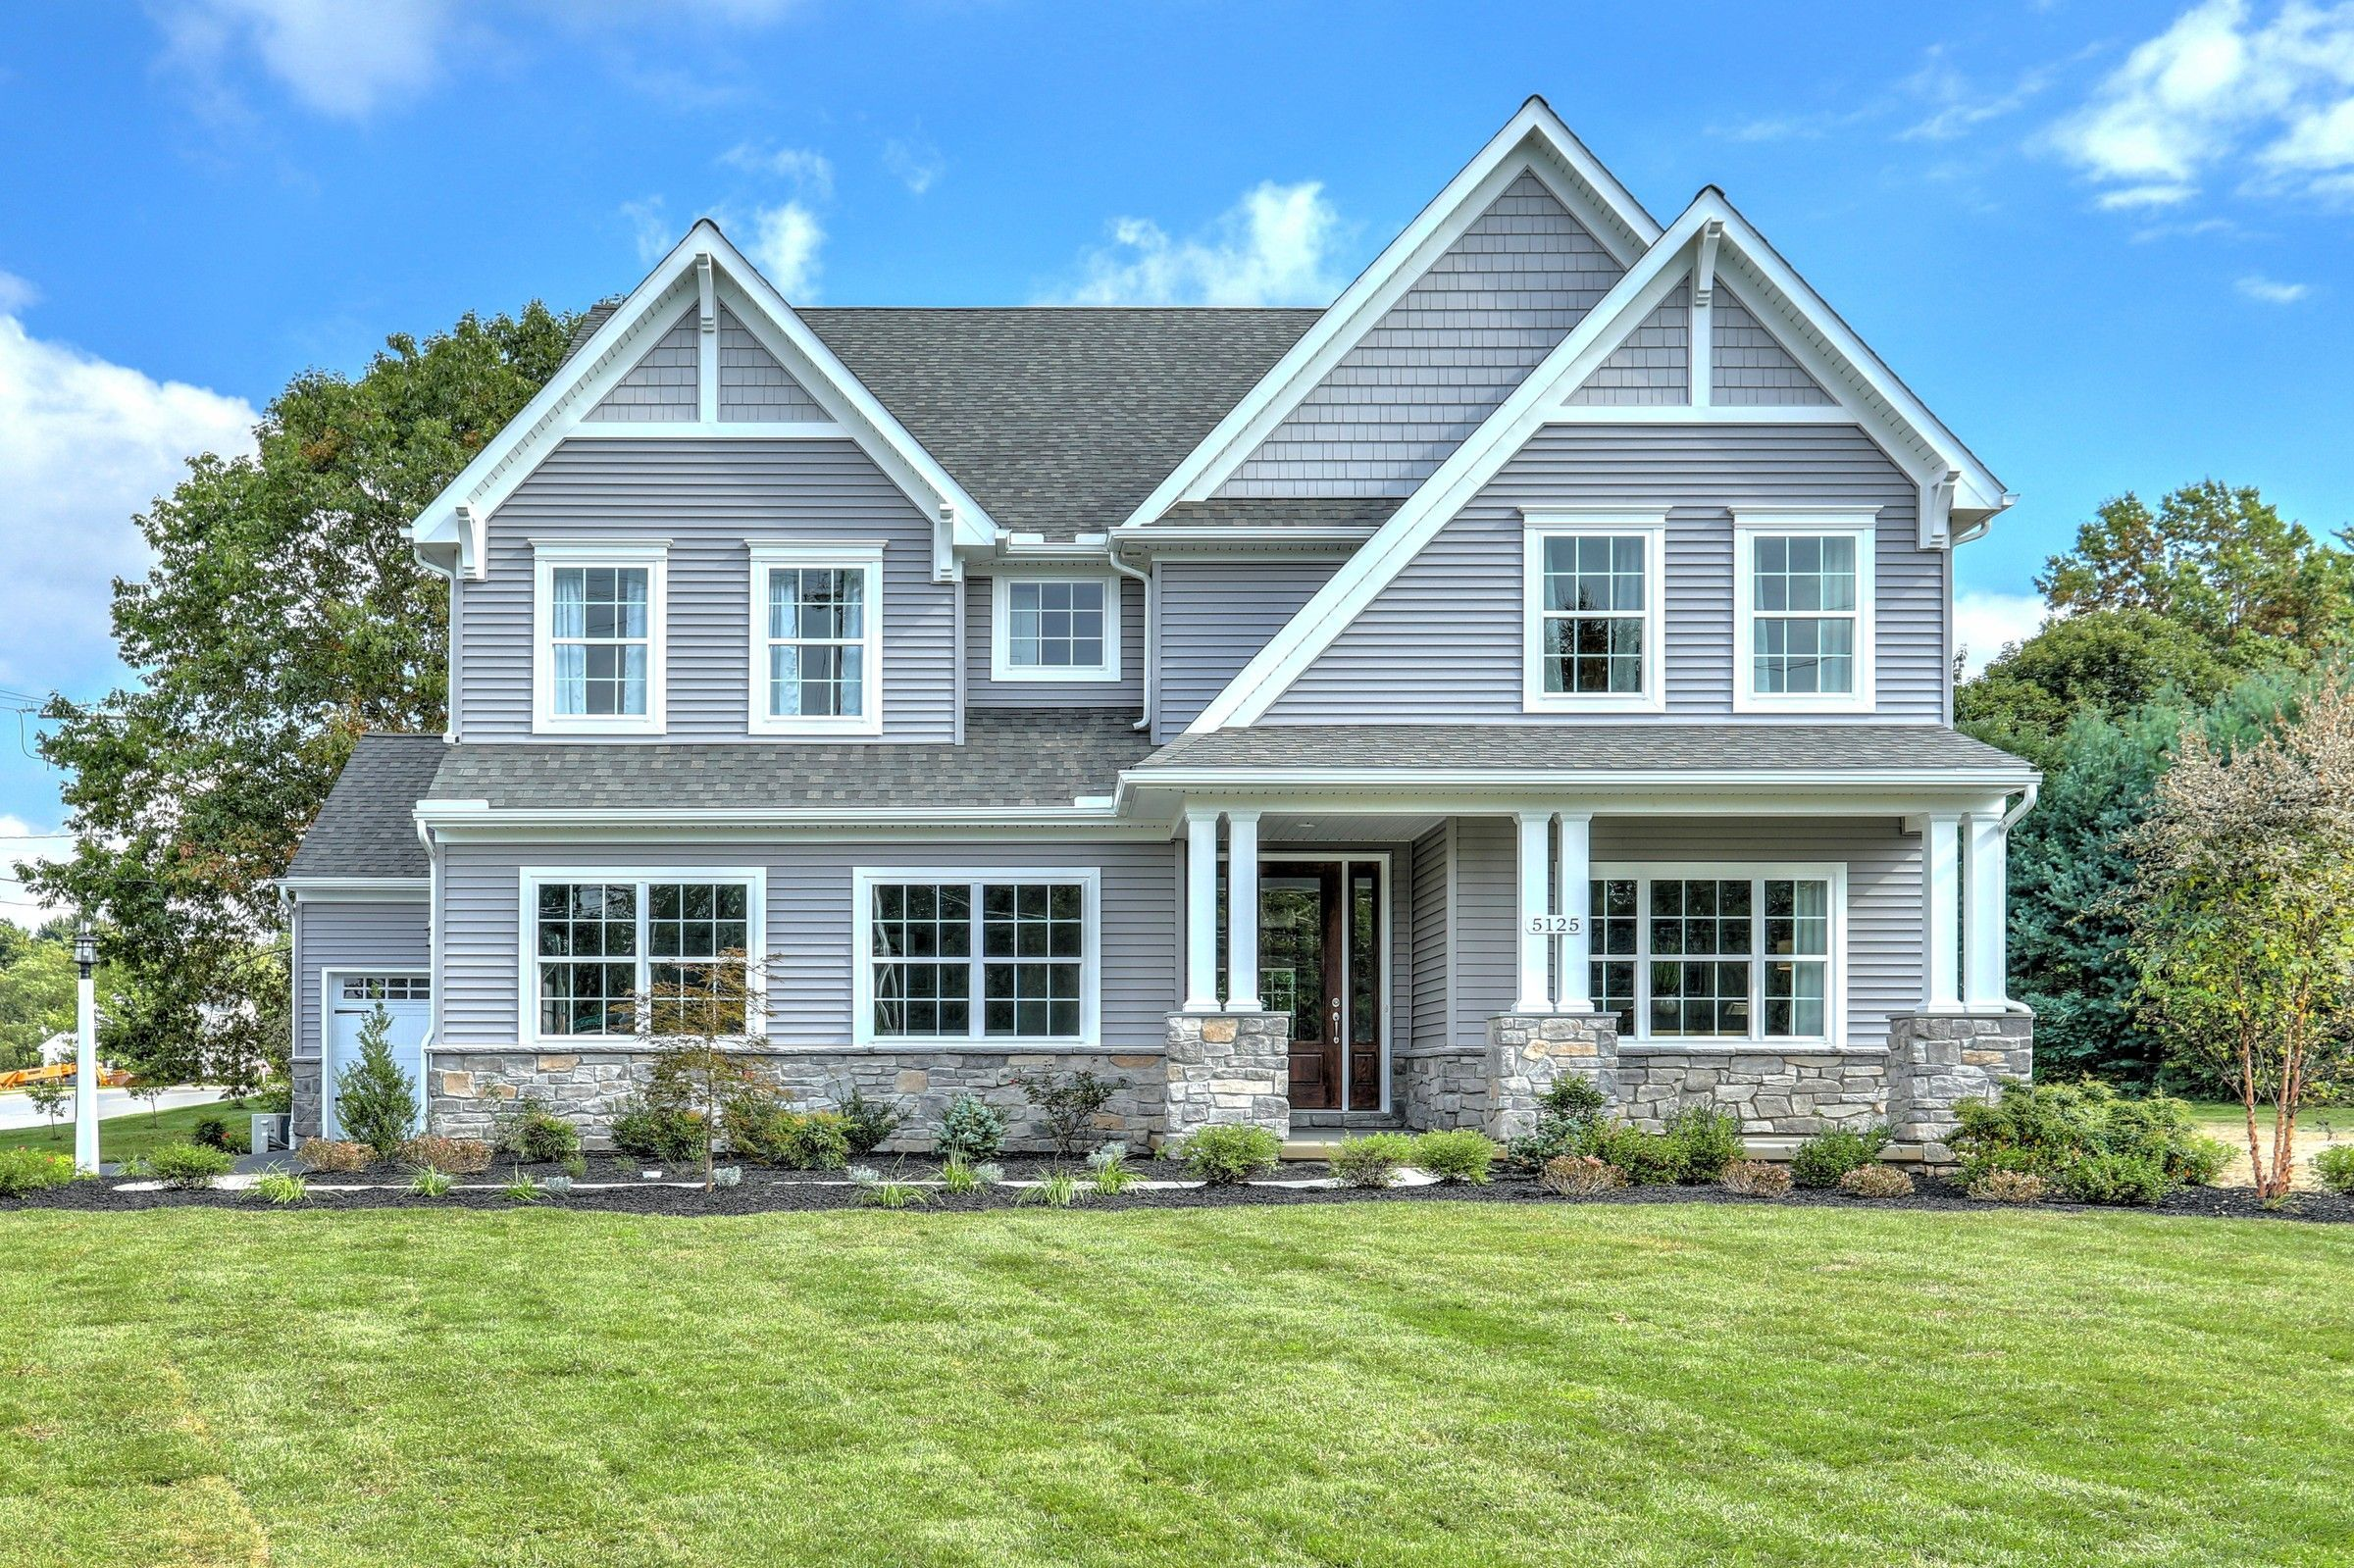 New Homes in Ephrata, PA | 165 Communities | NewHomeSource